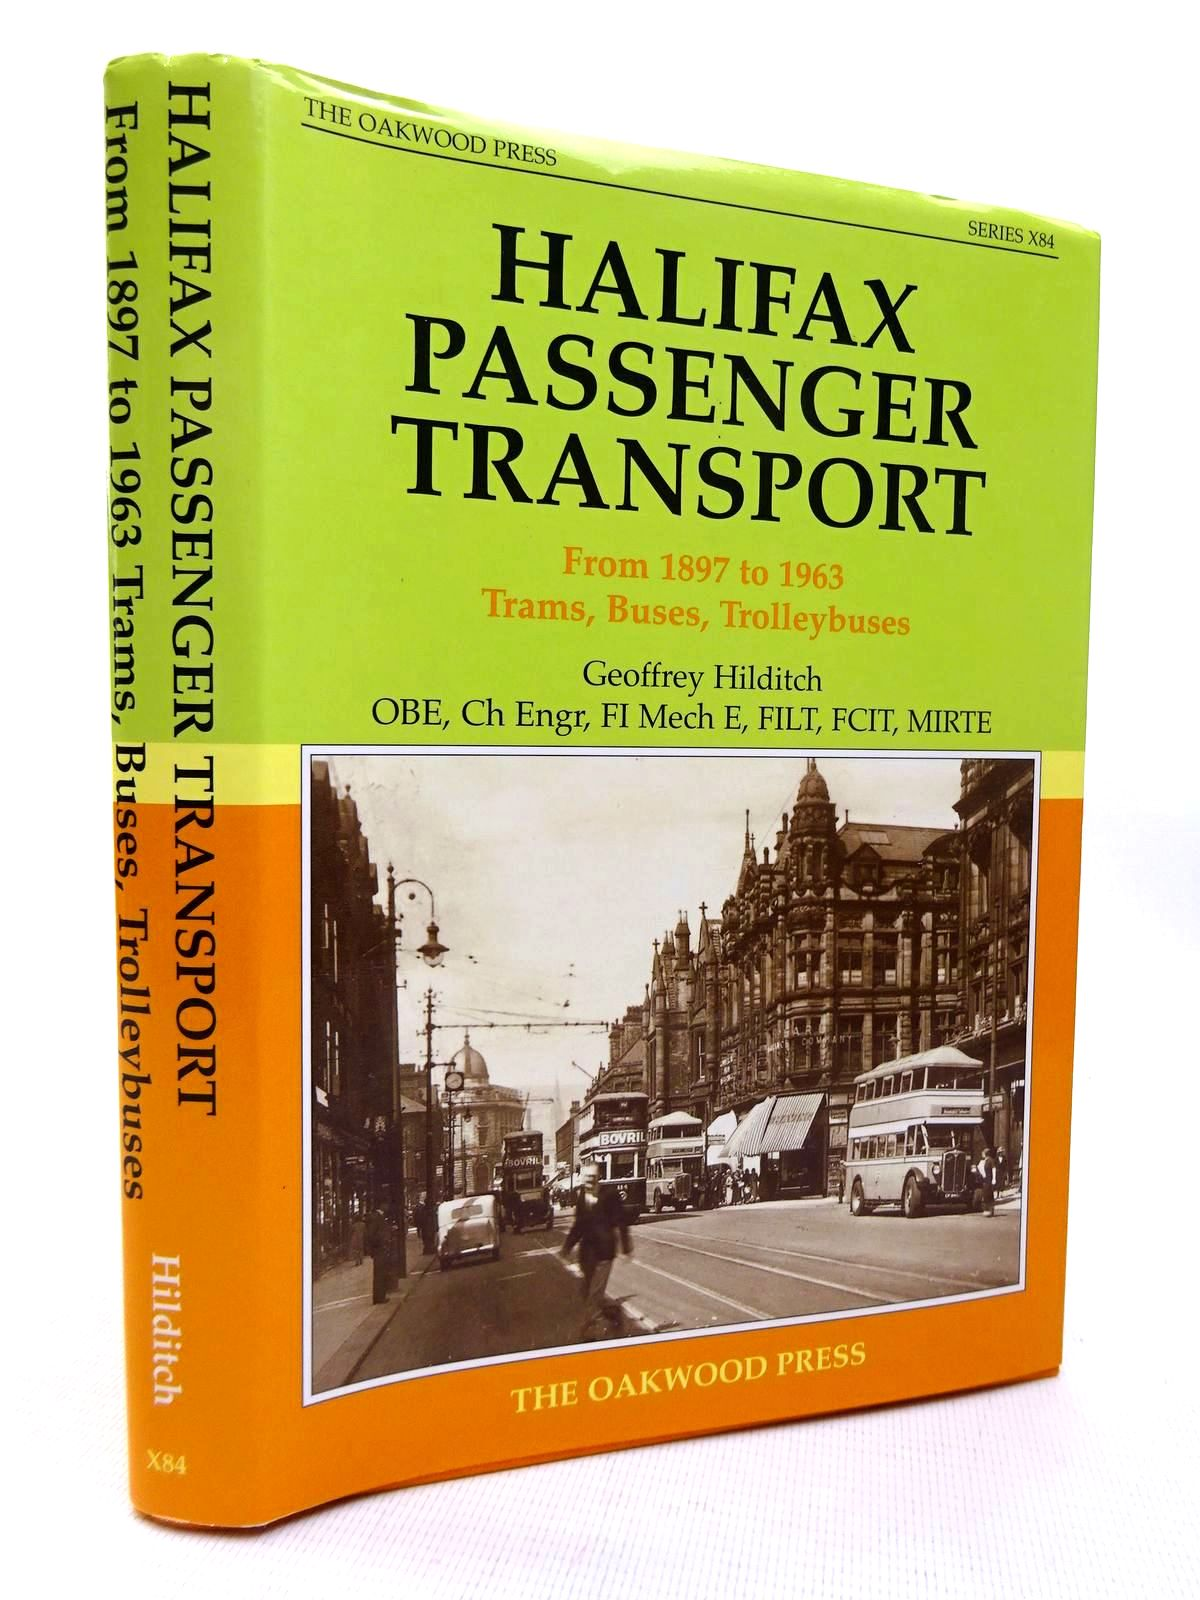 Photo of HALIFAX PASSENGER TRANSPORT FROM 1897 TO 1963 TRAMS, BUSES, TROLLEYBUSES written by Hilditch, Geoffrey published by The Oakwood Press (STOCK CODE: 1816367)  for sale by Stella & Rose's Books